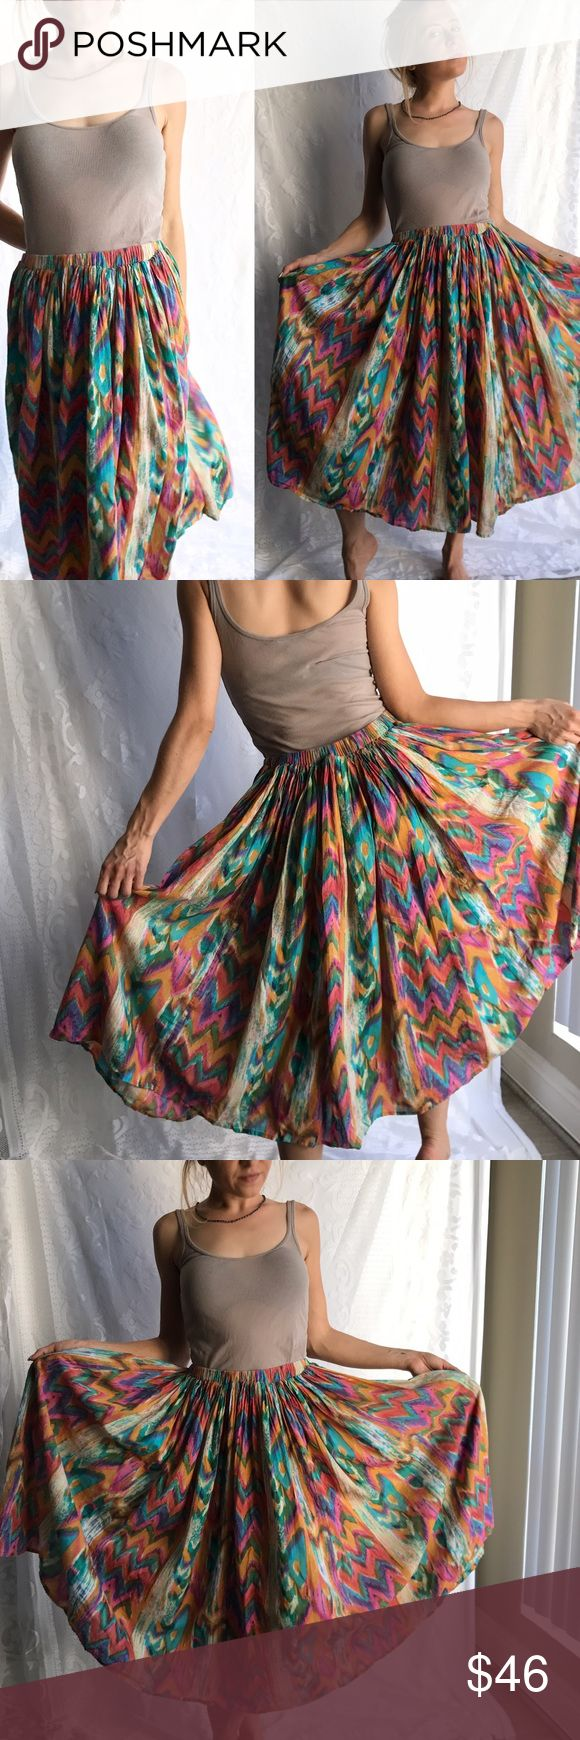 Amazing Vintage Colorful Tribal Print Cotton Skirt Amazing vintage tribal print skirt, beautiful colors, one size fits most. Adjustable draw string inside waistline. 100% Cotton, made in India. Brand name Drapers & Damons, 1980s. Great condition. 💕✨ Vintage Skirts Midi